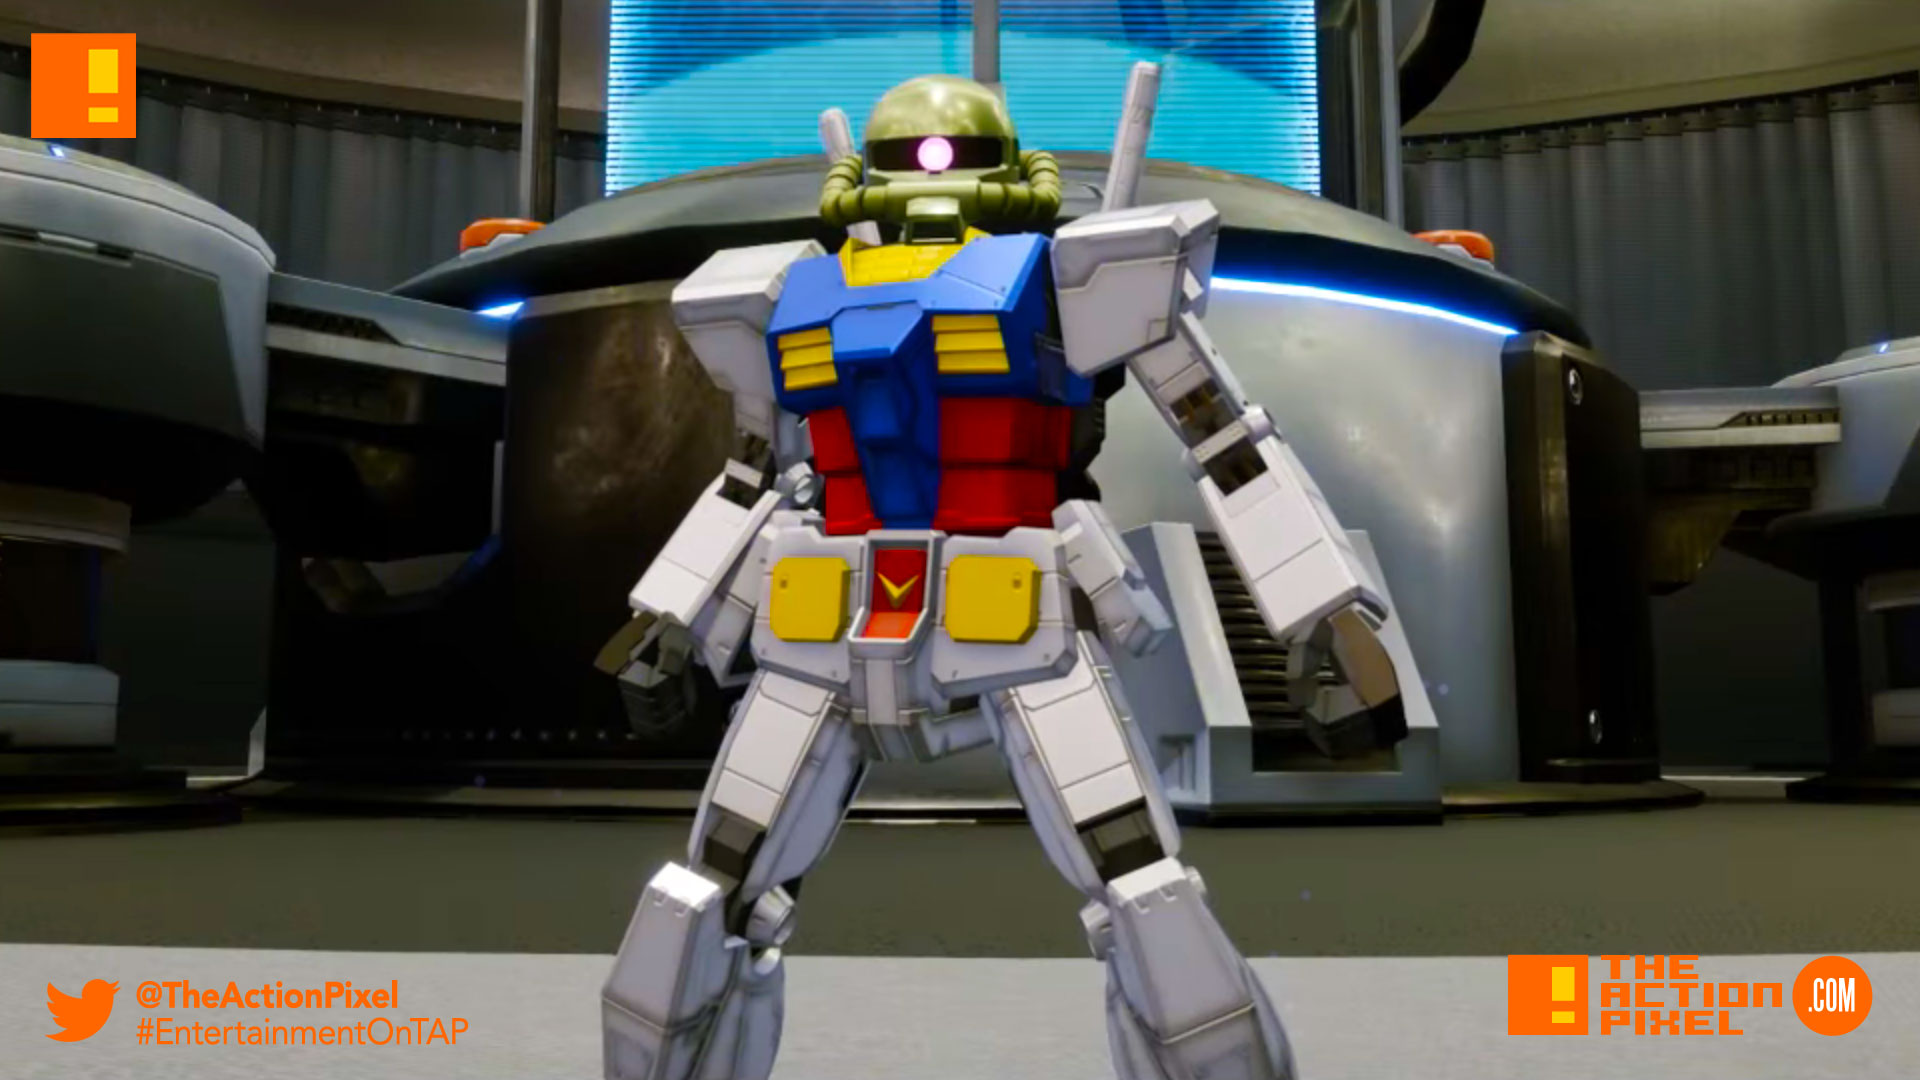 Gundam breaker, gundam, bandai namco, bandai namco entertainment , the action pixel, entertainment on tap